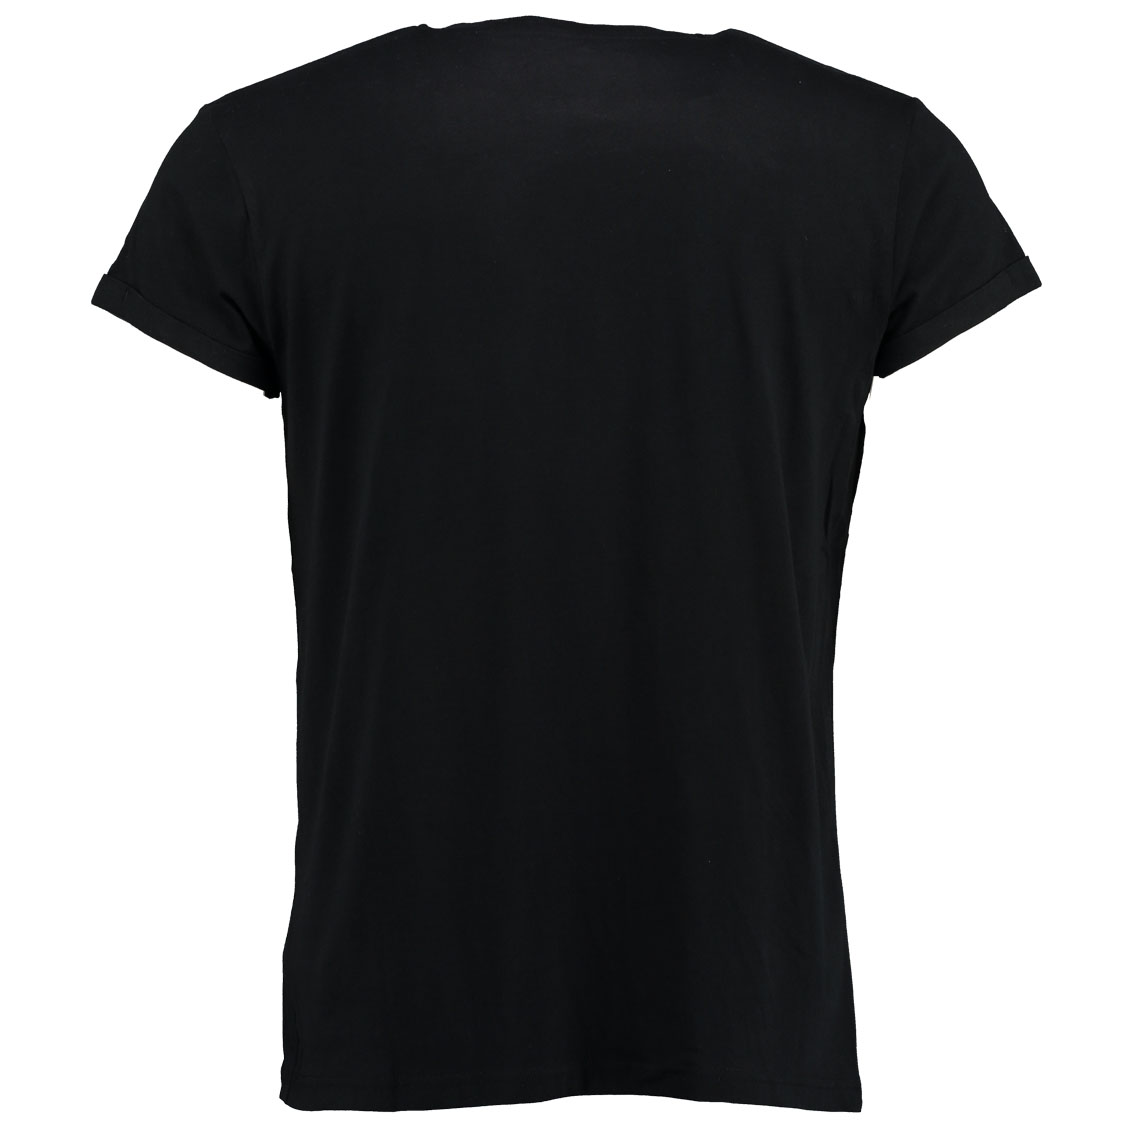 Deportment Department T shirt mens black back